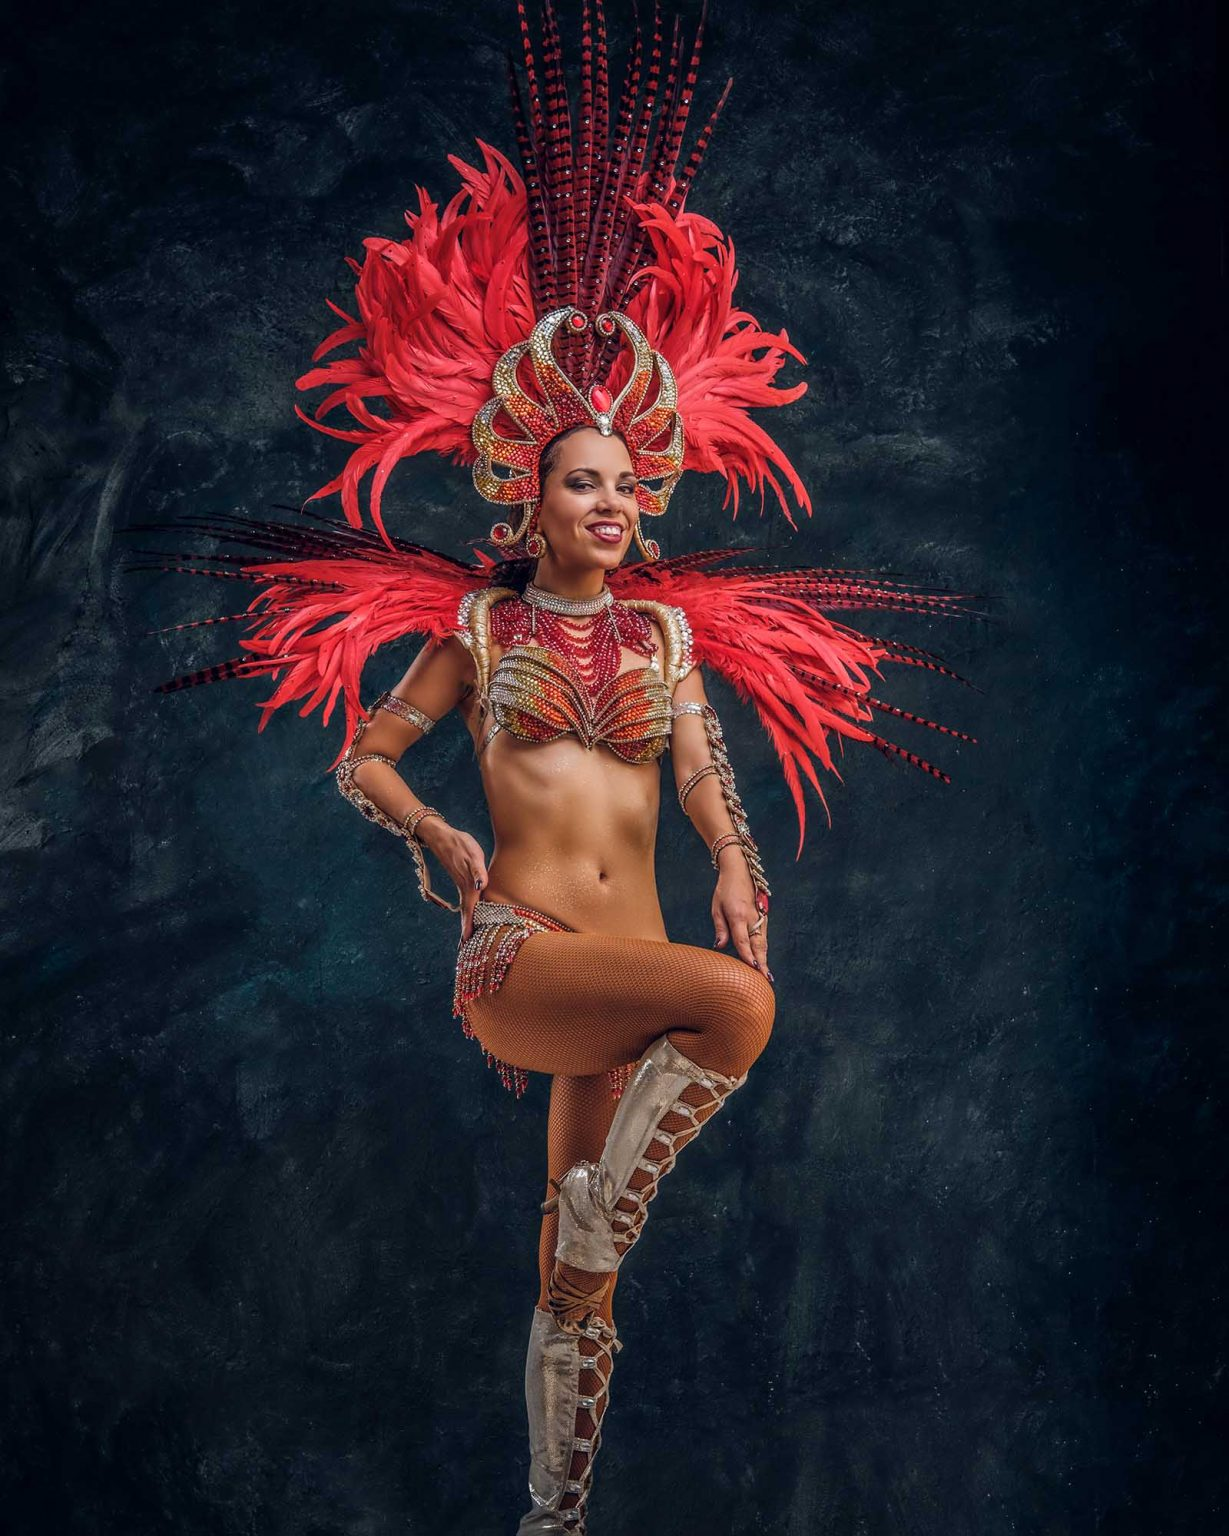 beautiful brazil dancer in red feather costume is HYH3L4L